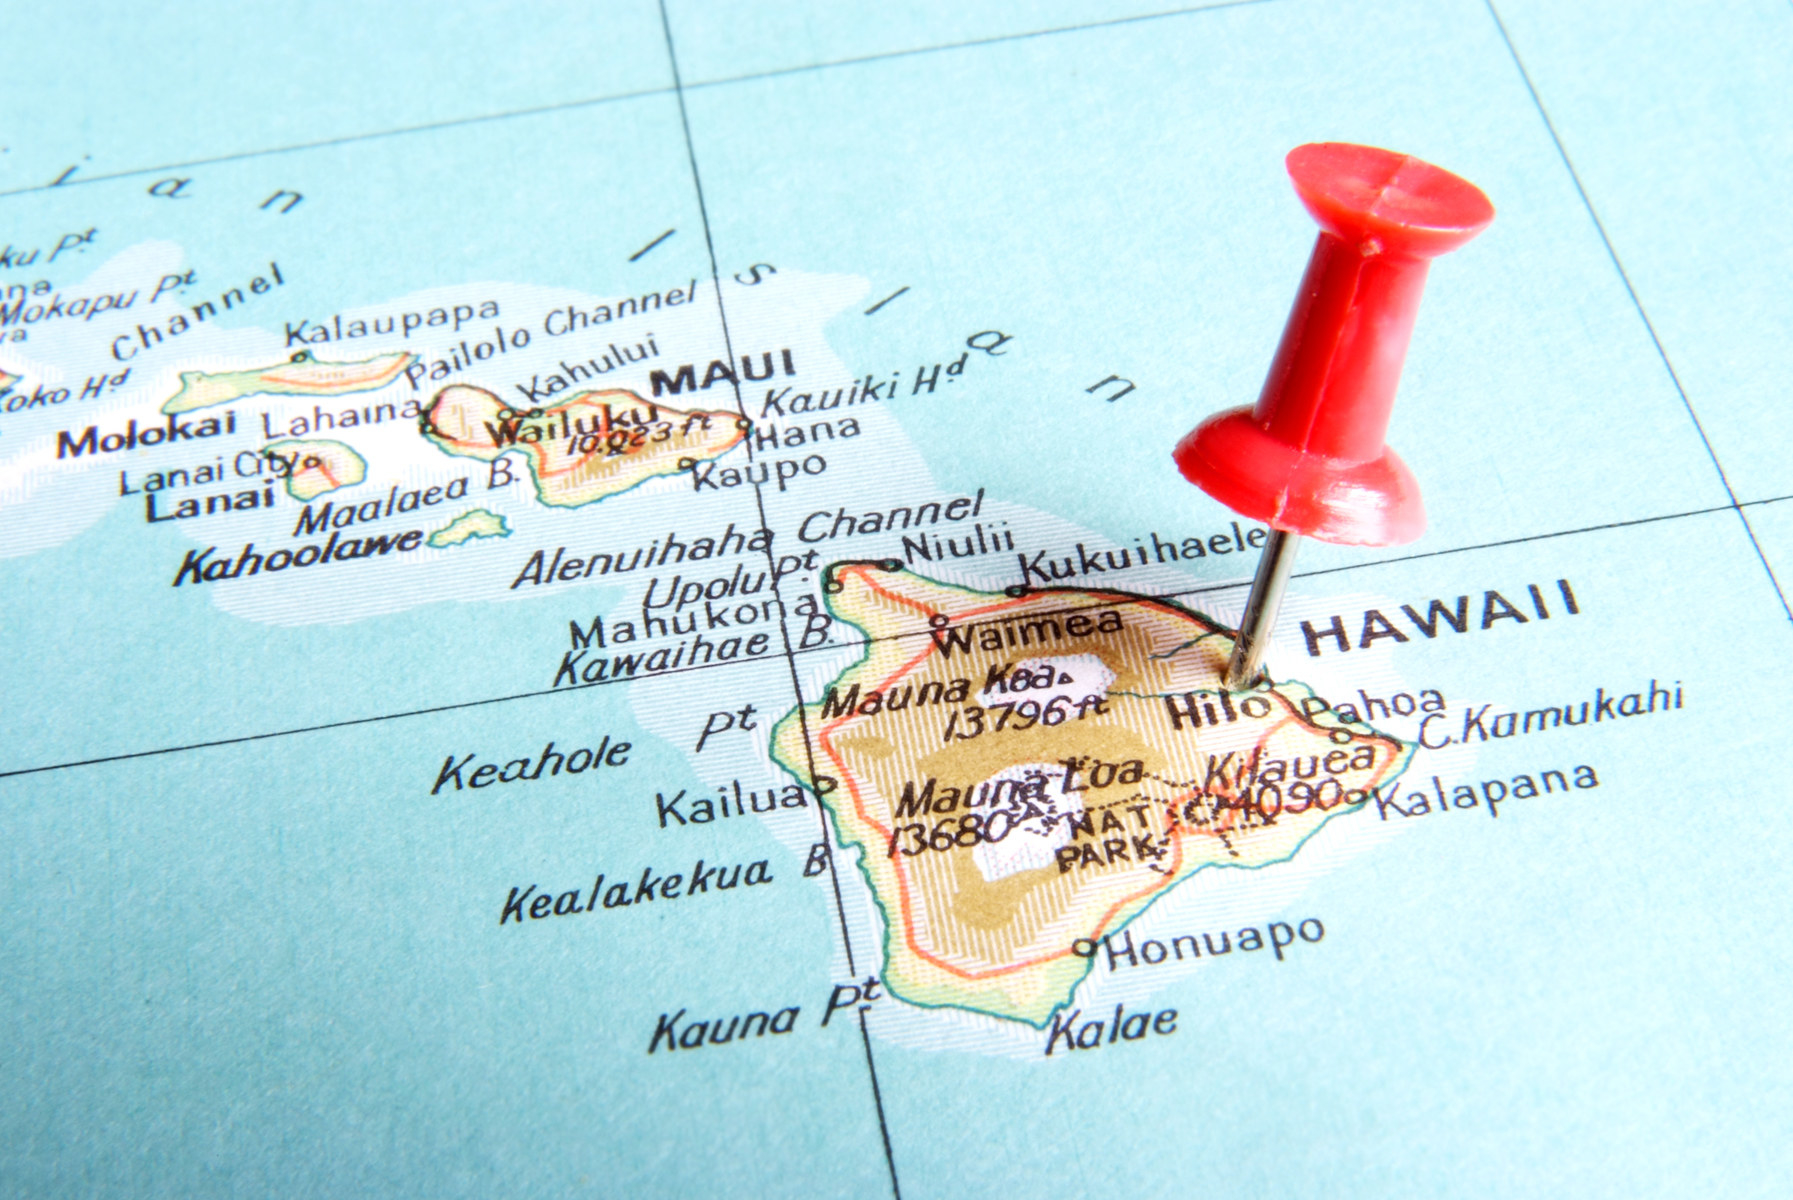 Close-up of Hawaii on a map with a red pushpin close to Hilo on the big island